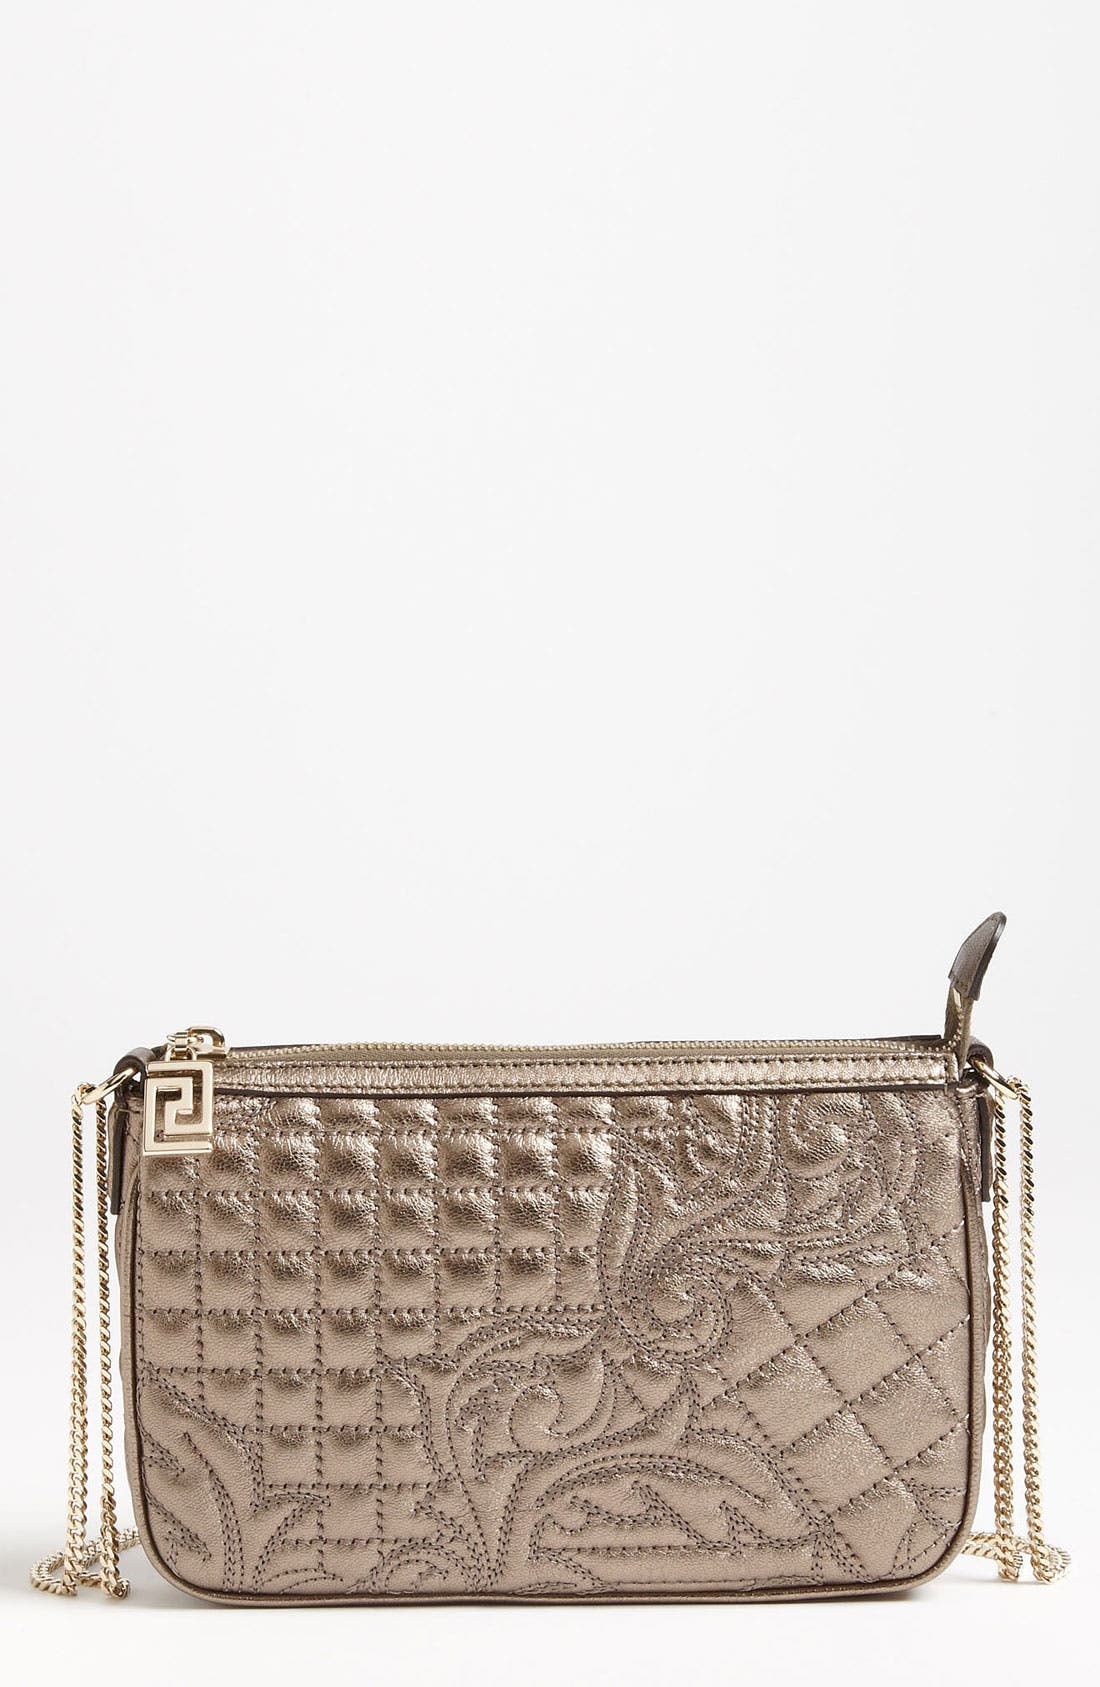 Alternate Image 1 Selected - Versace 'Vanitas' Leather Crossbody Pouchette